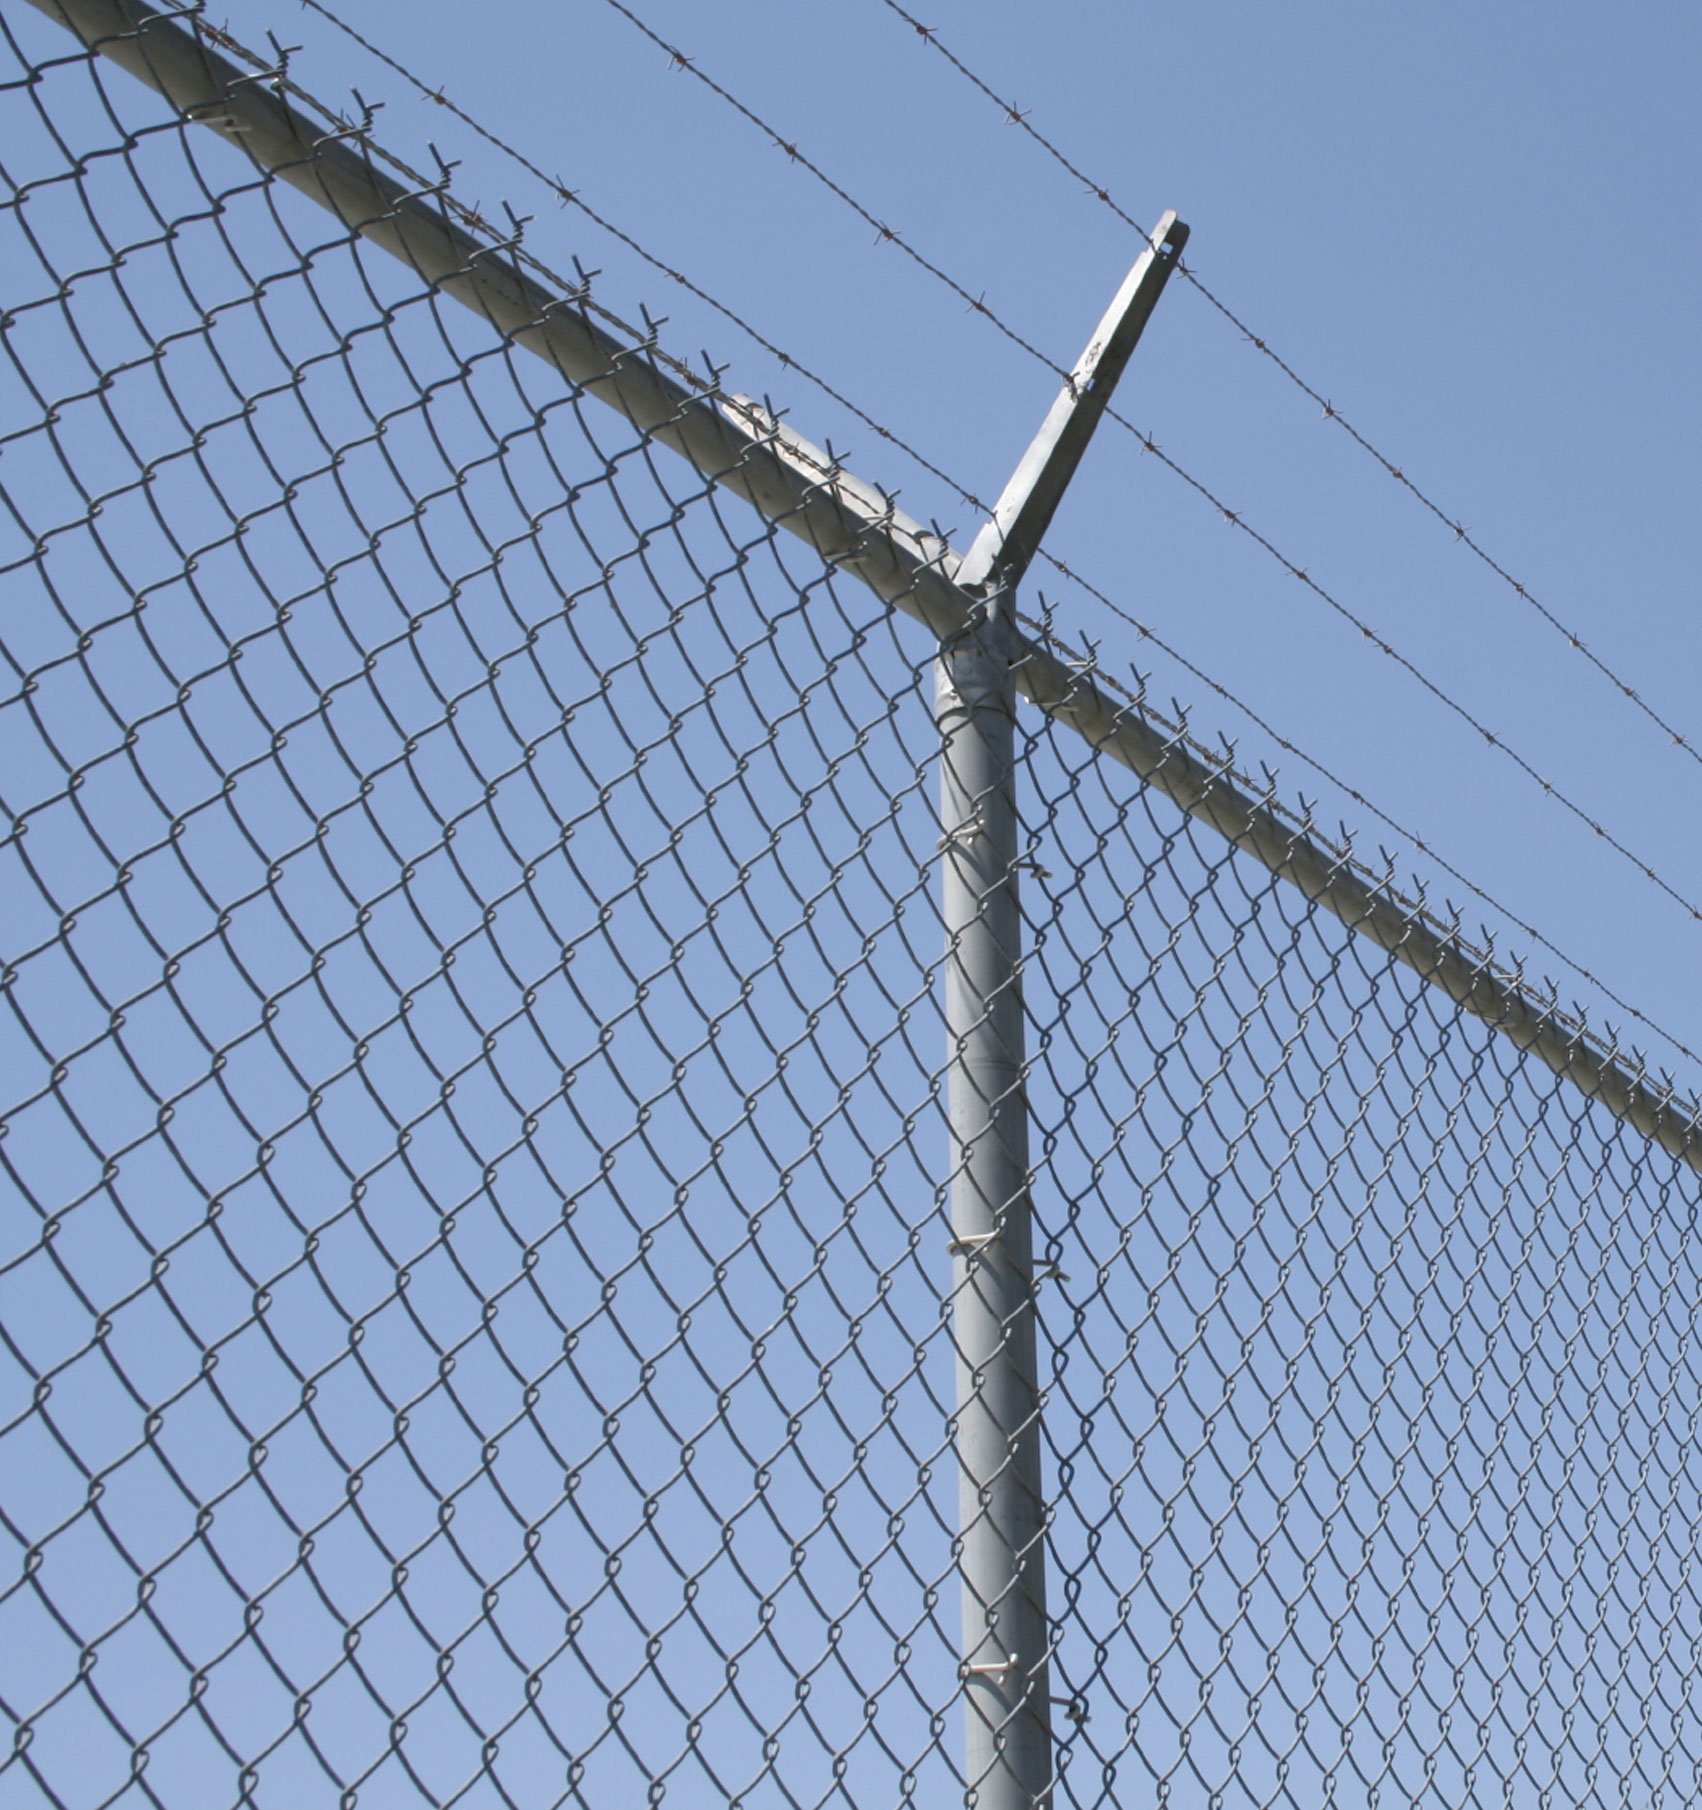 Gate Operators & Commercial Fencing Company | FenceCo